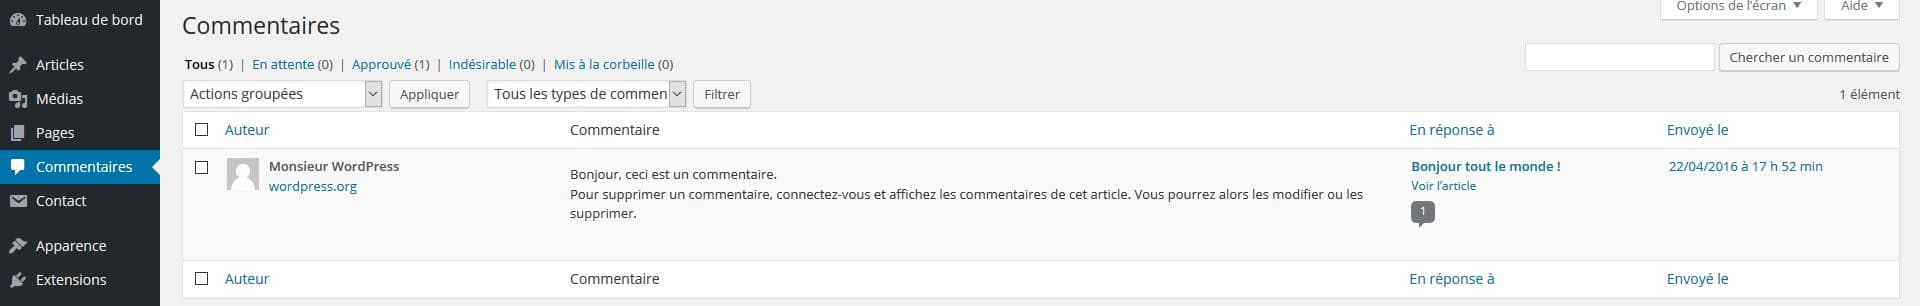 onglet commentaires wp